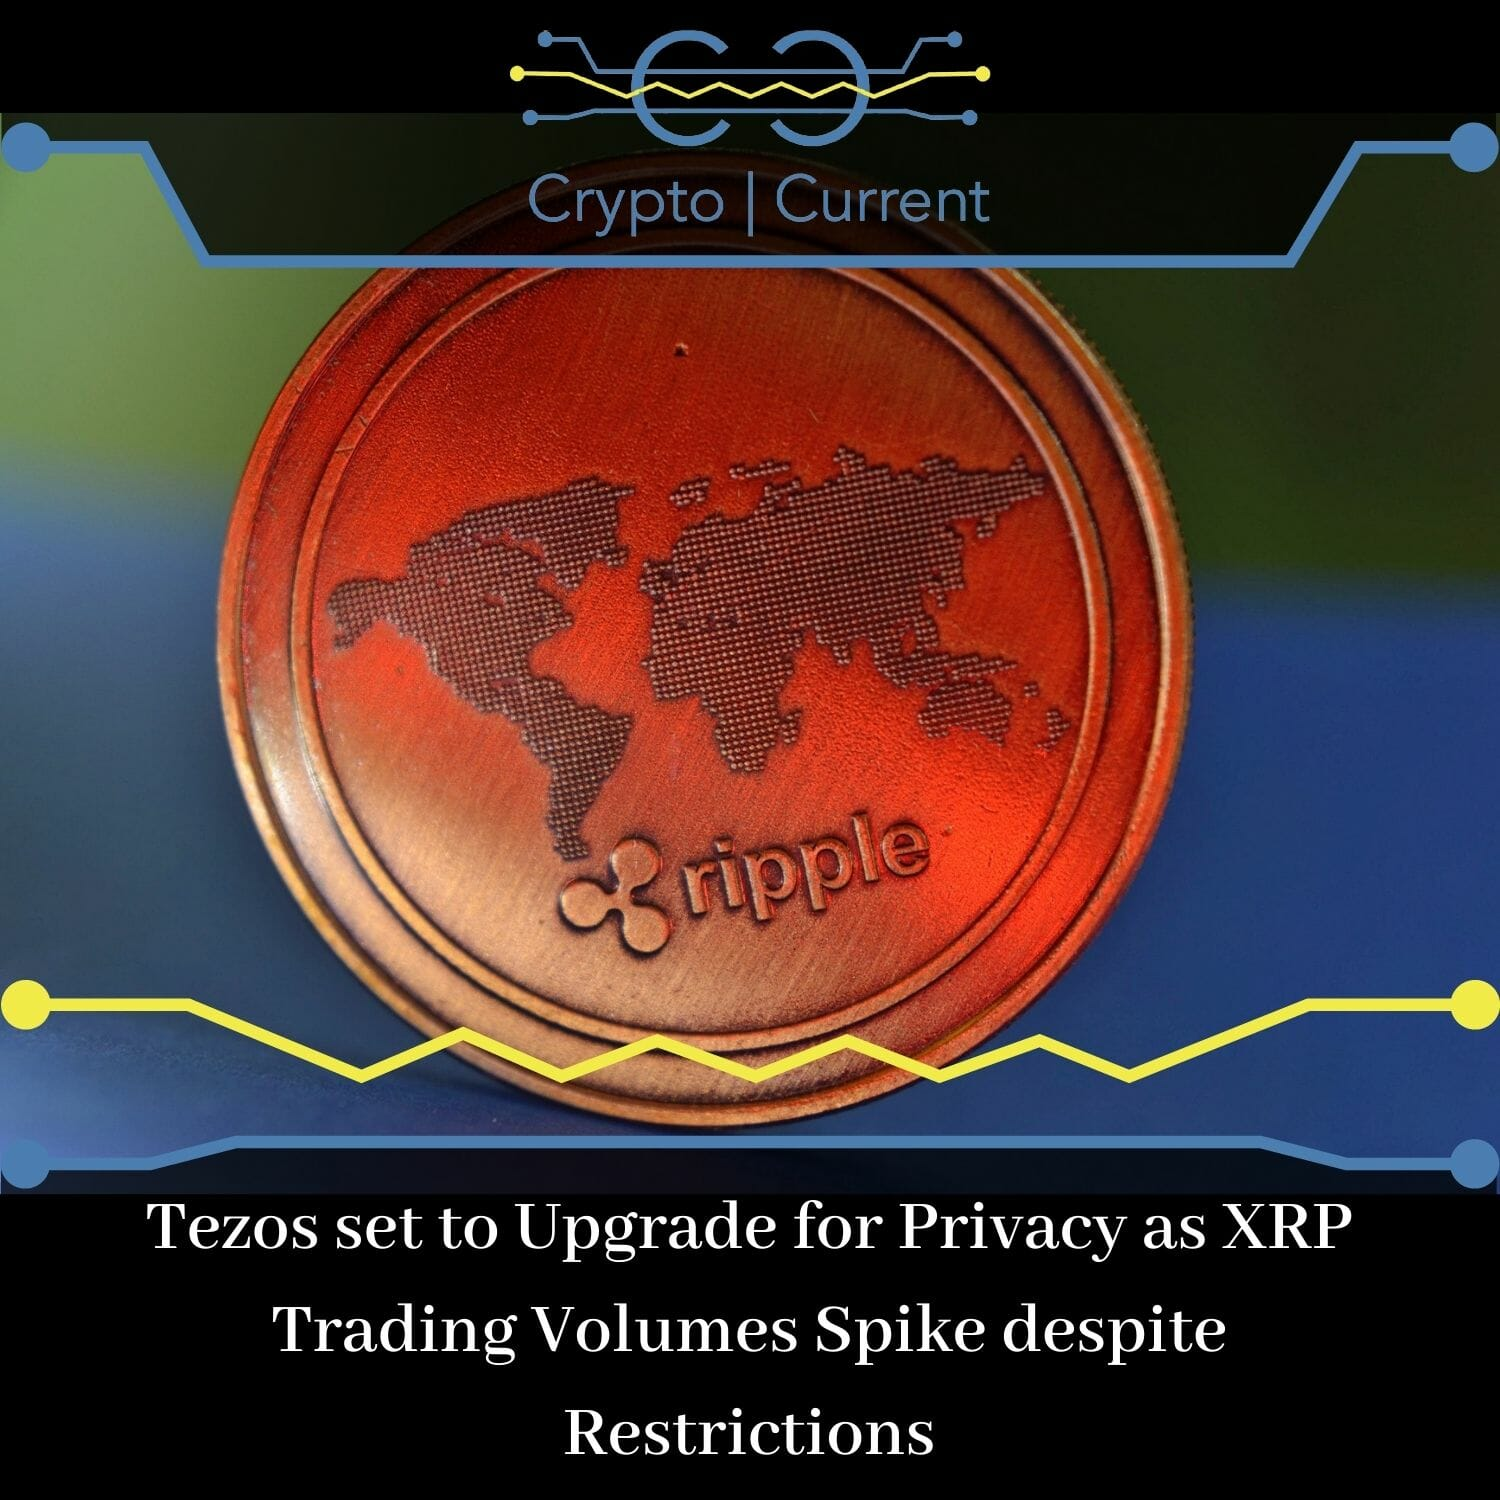 Tezos set to Upgrade for Privacy as XRP Trading Volumes Spike despite Restrictions